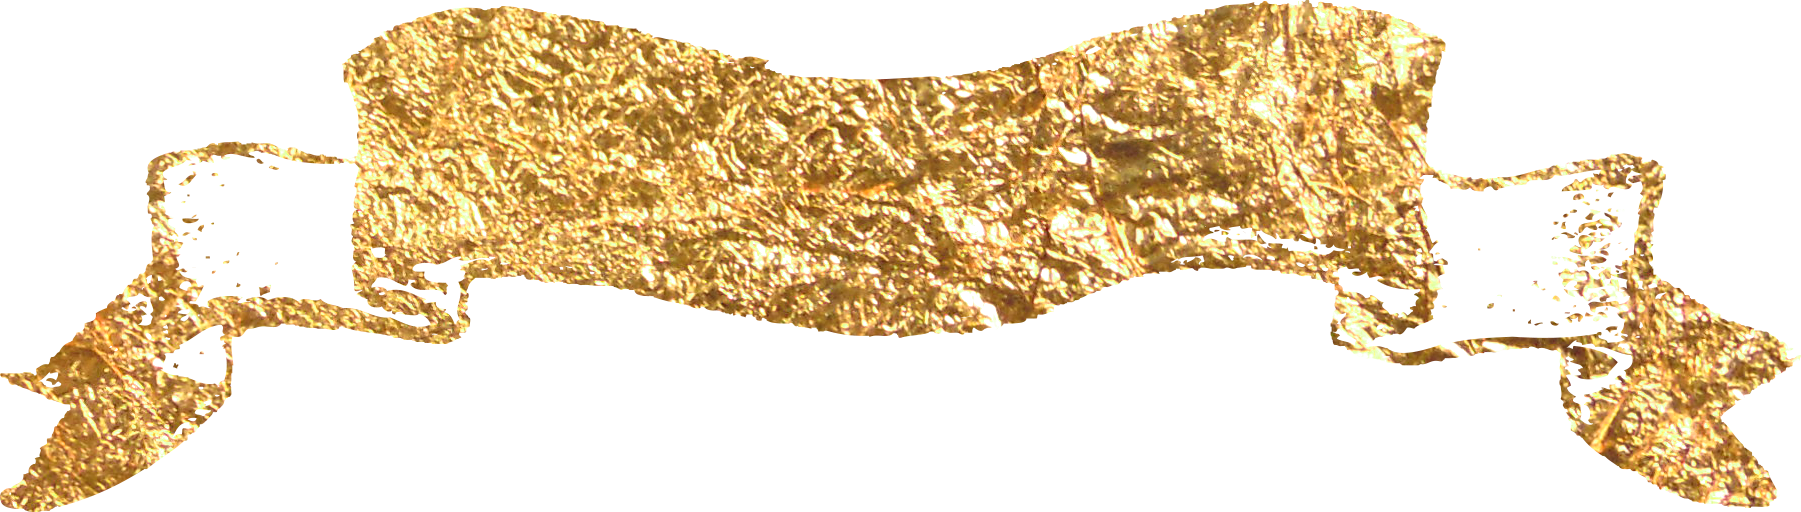 Material transprent free download. Gold glitter banner png graphic download